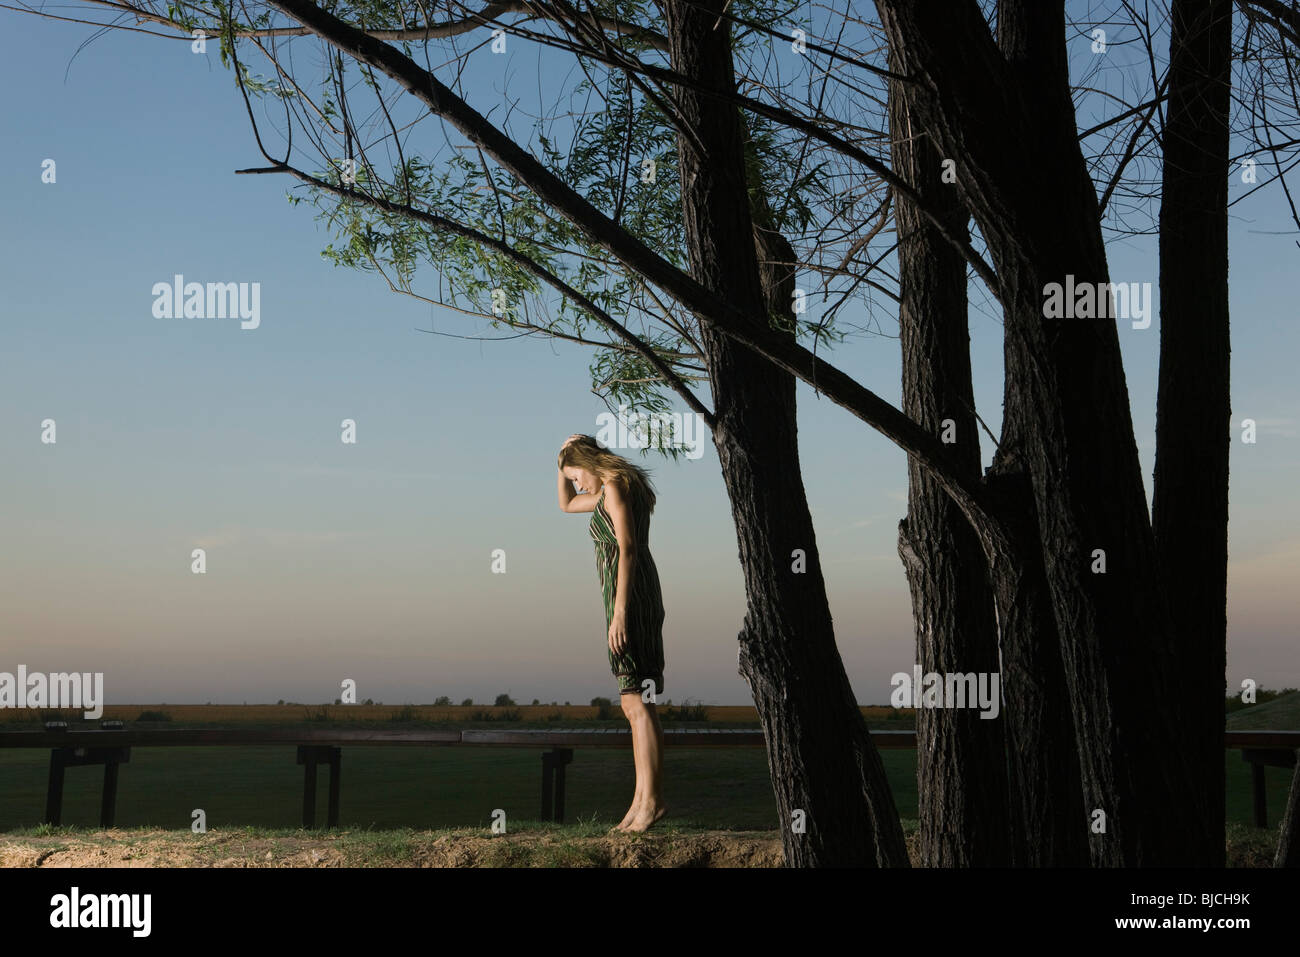 Woman standing on tiptoes outdoors, holding head and looking down - Stock Image